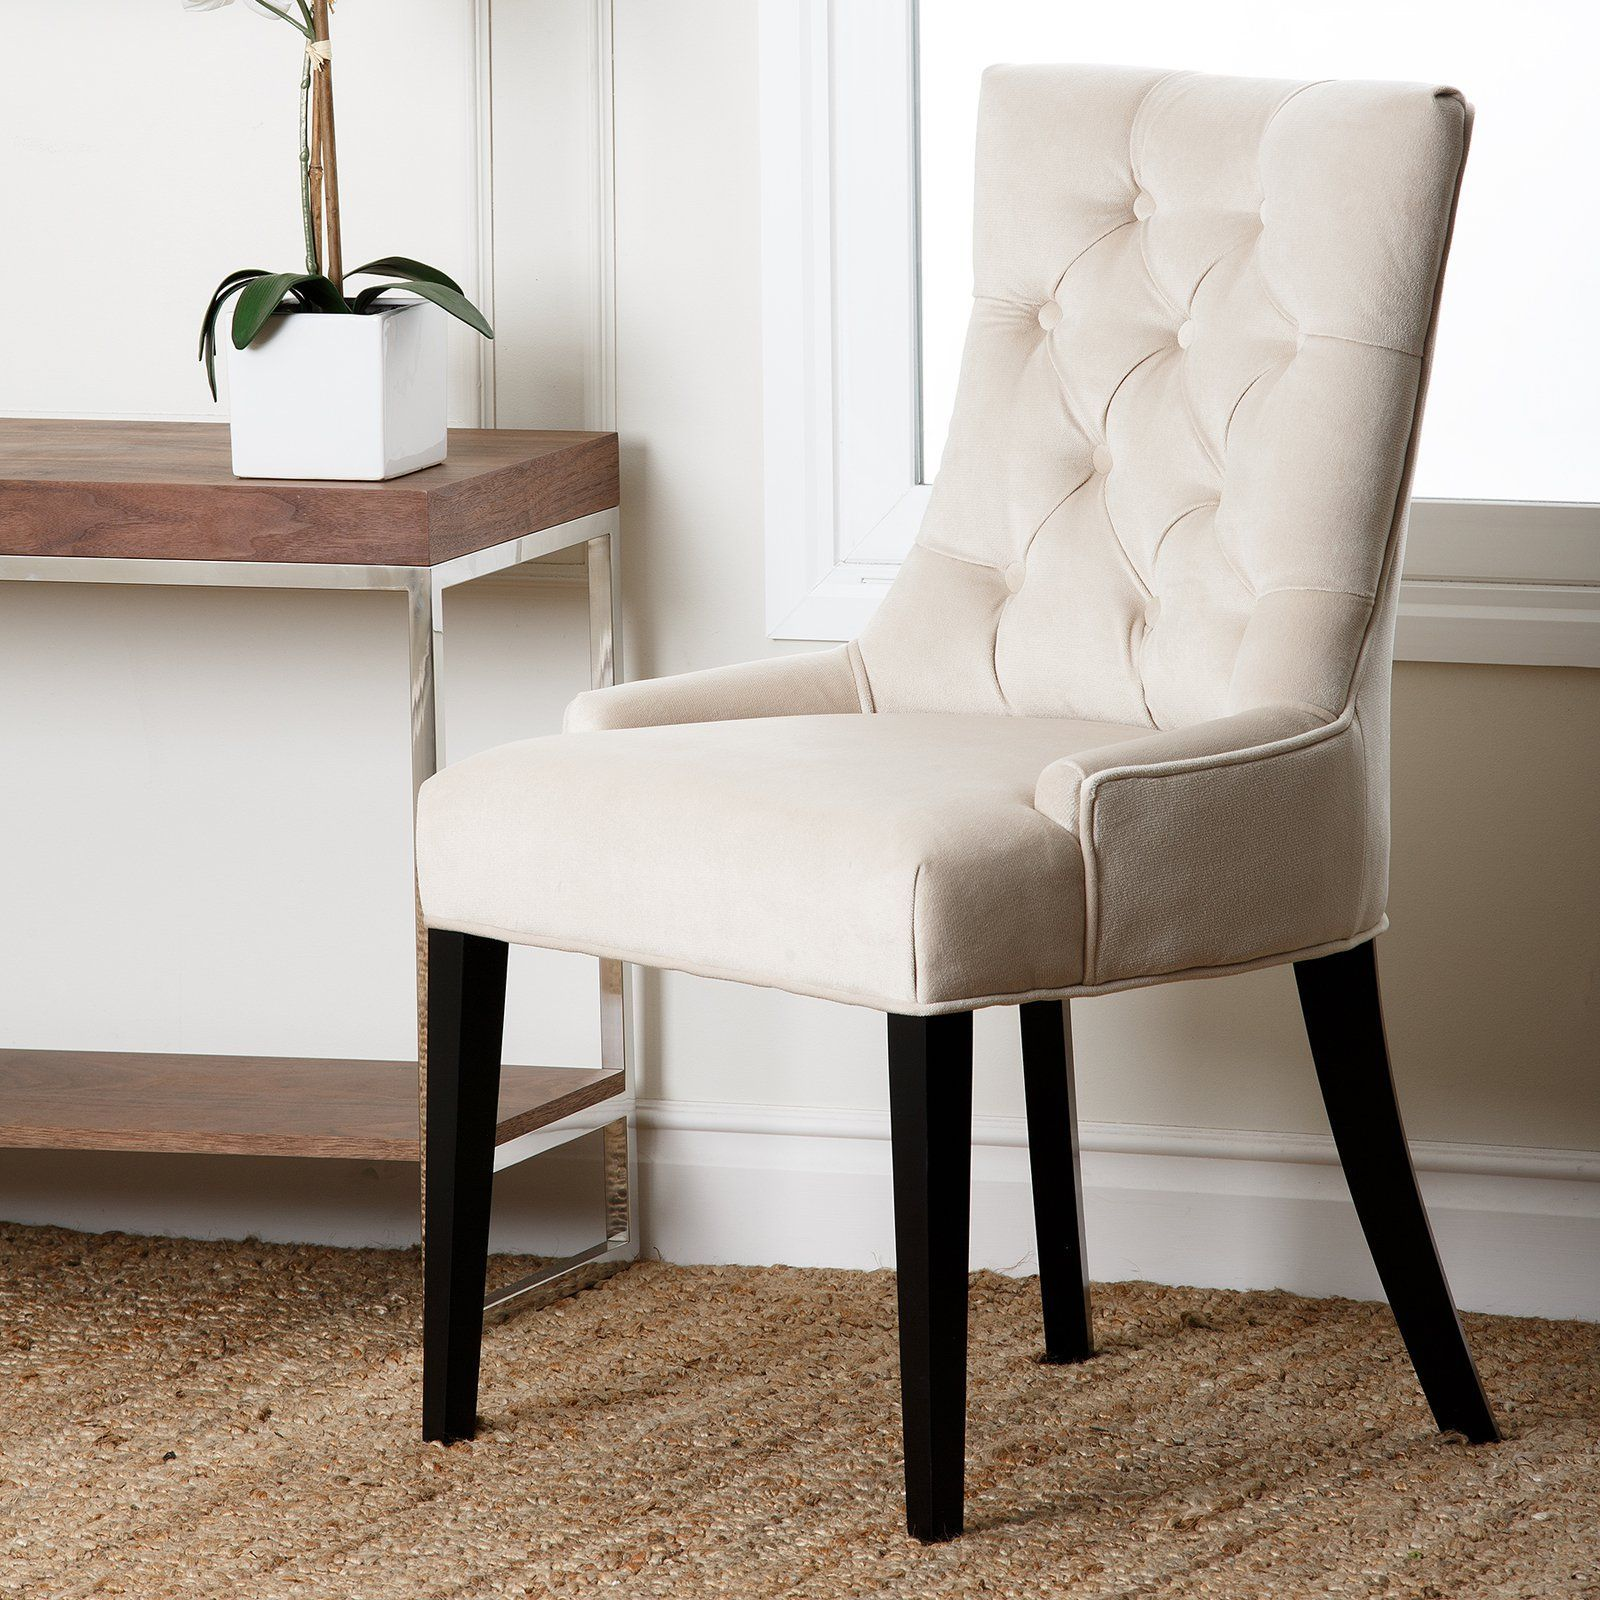 Abbyson Living Maverick Fabric Tufted Dining Chair Cream From